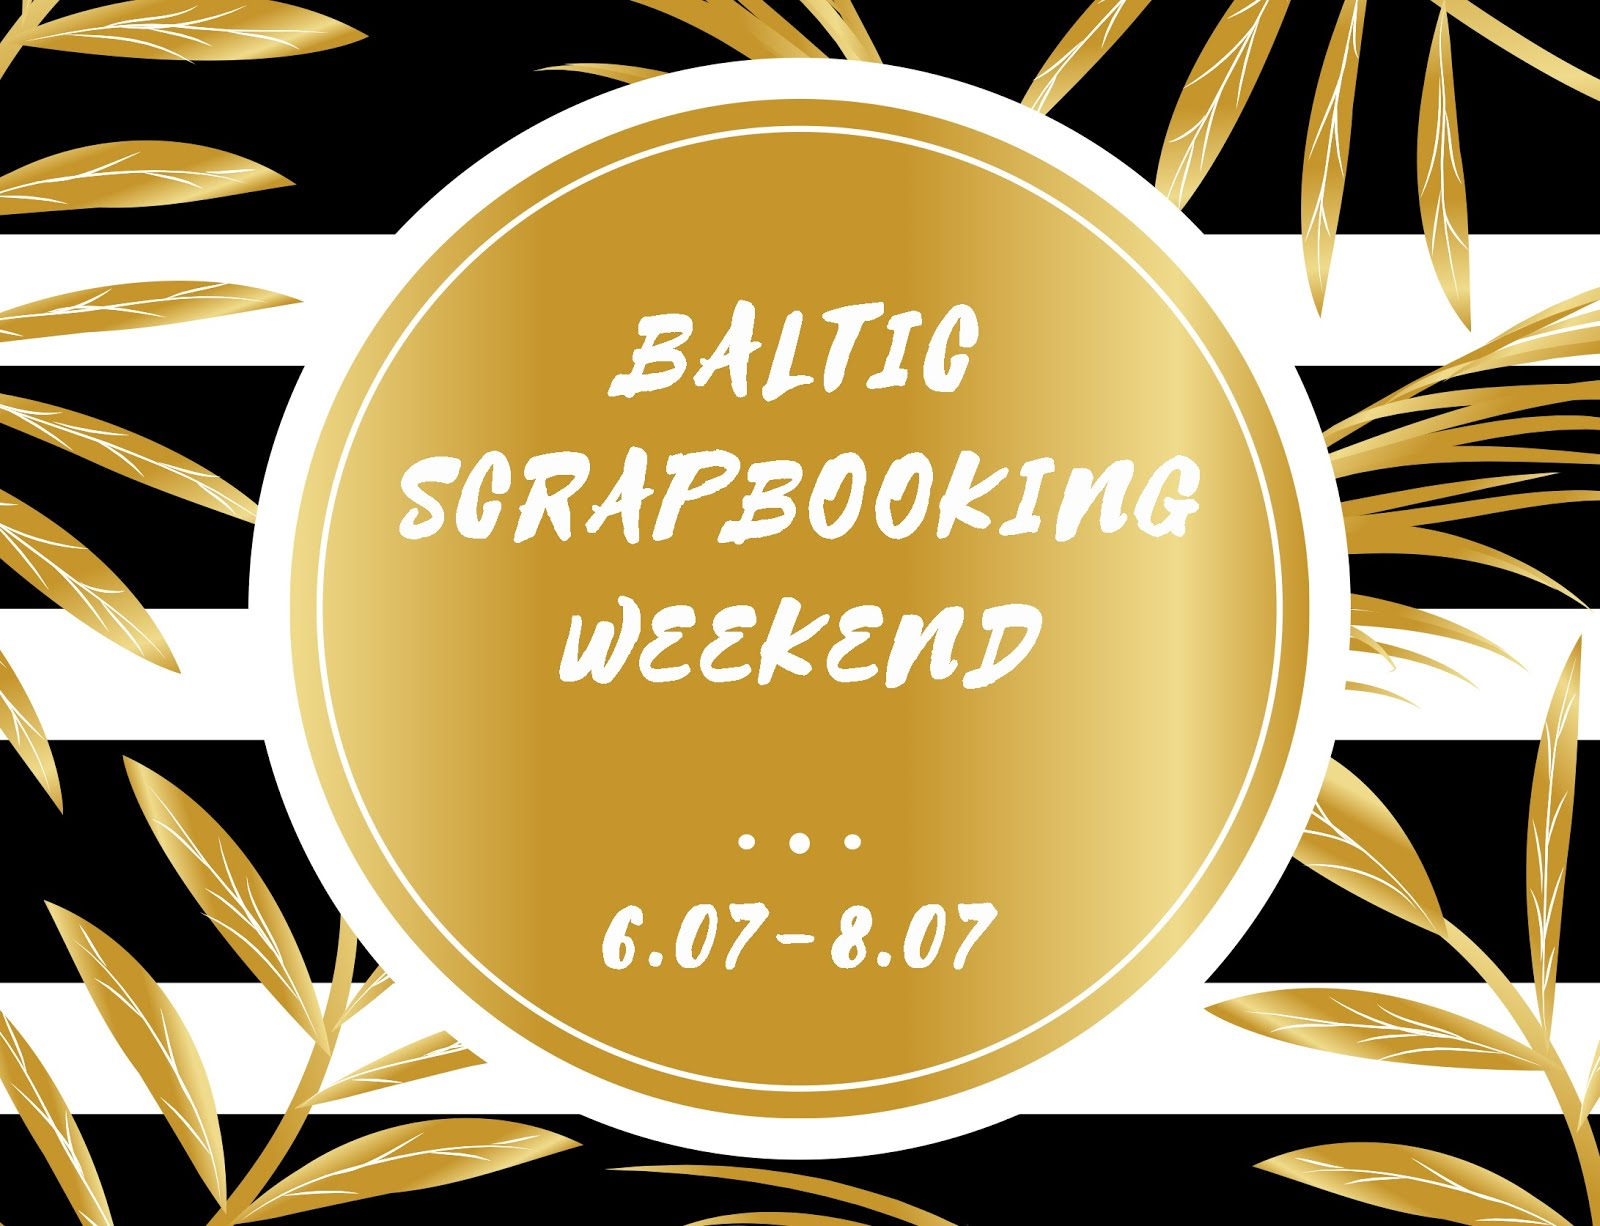 Baltic Scrapbooking Weekend 6-8.07.2018 LATVIA